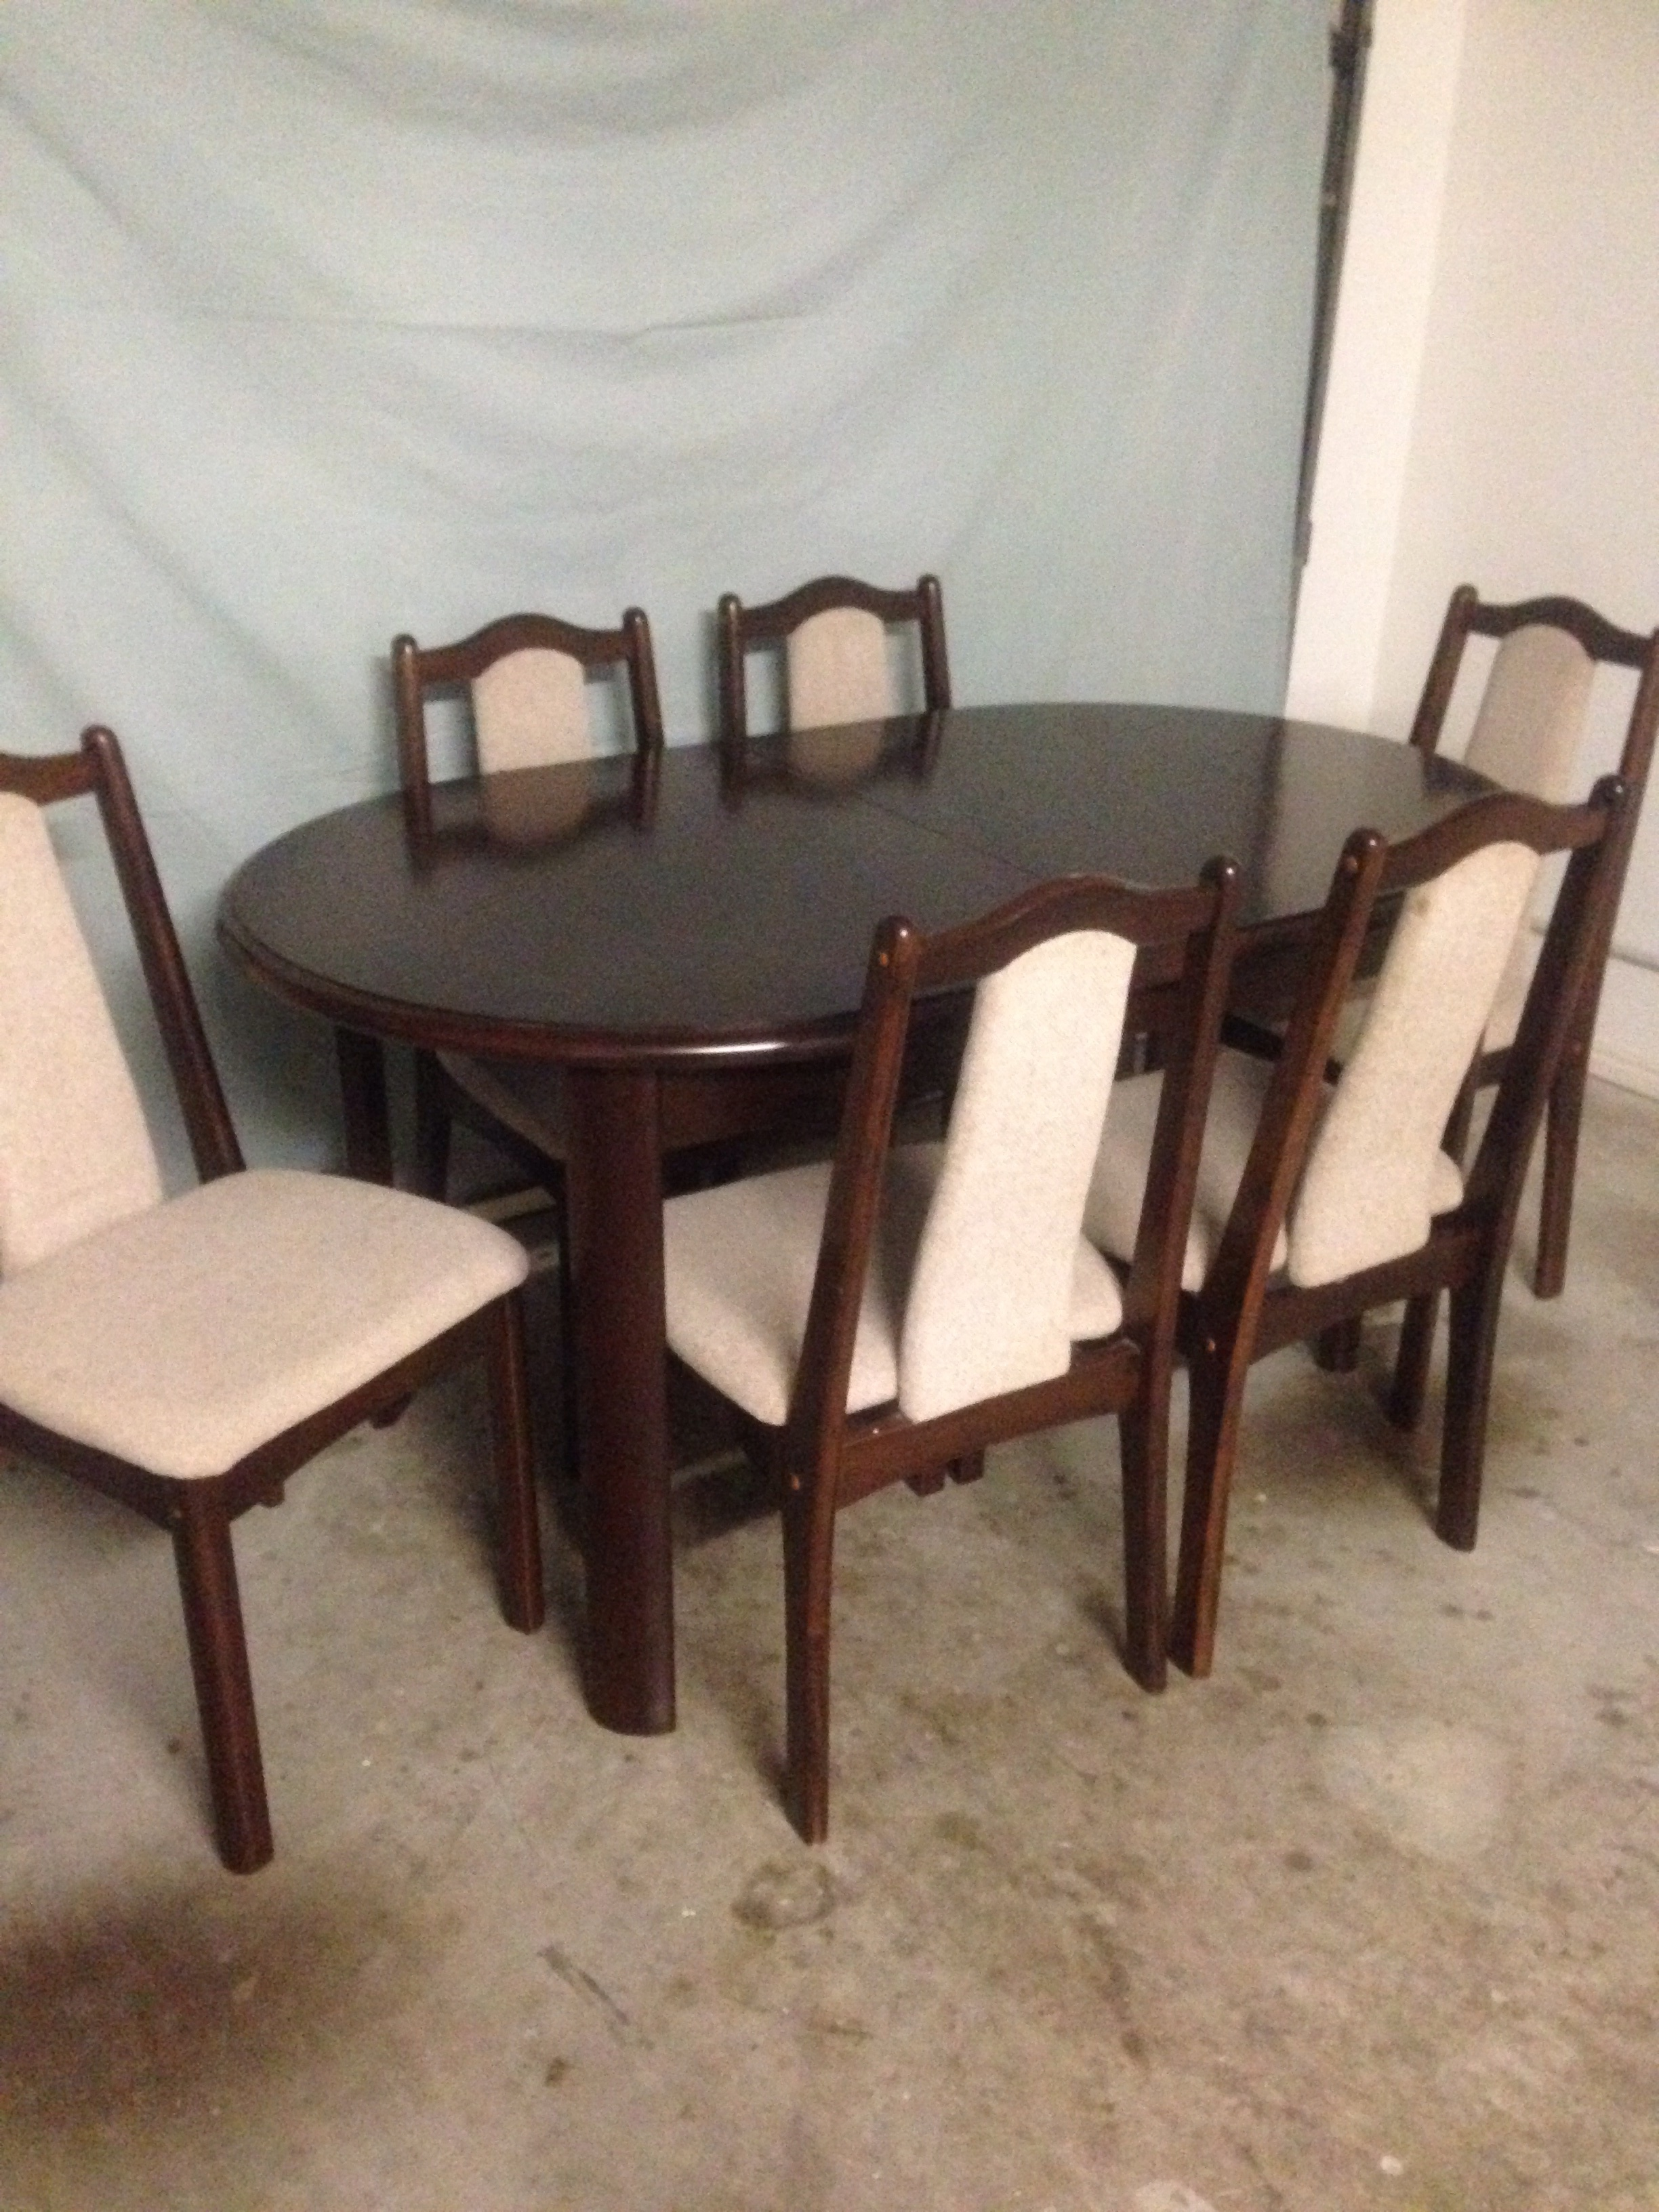 Very Good Condition 1.5metres L (extends 2 mtrs) 90cm W  neutral fabric on chairs. Phone 3-9pm only Ph 54927531. Neg.